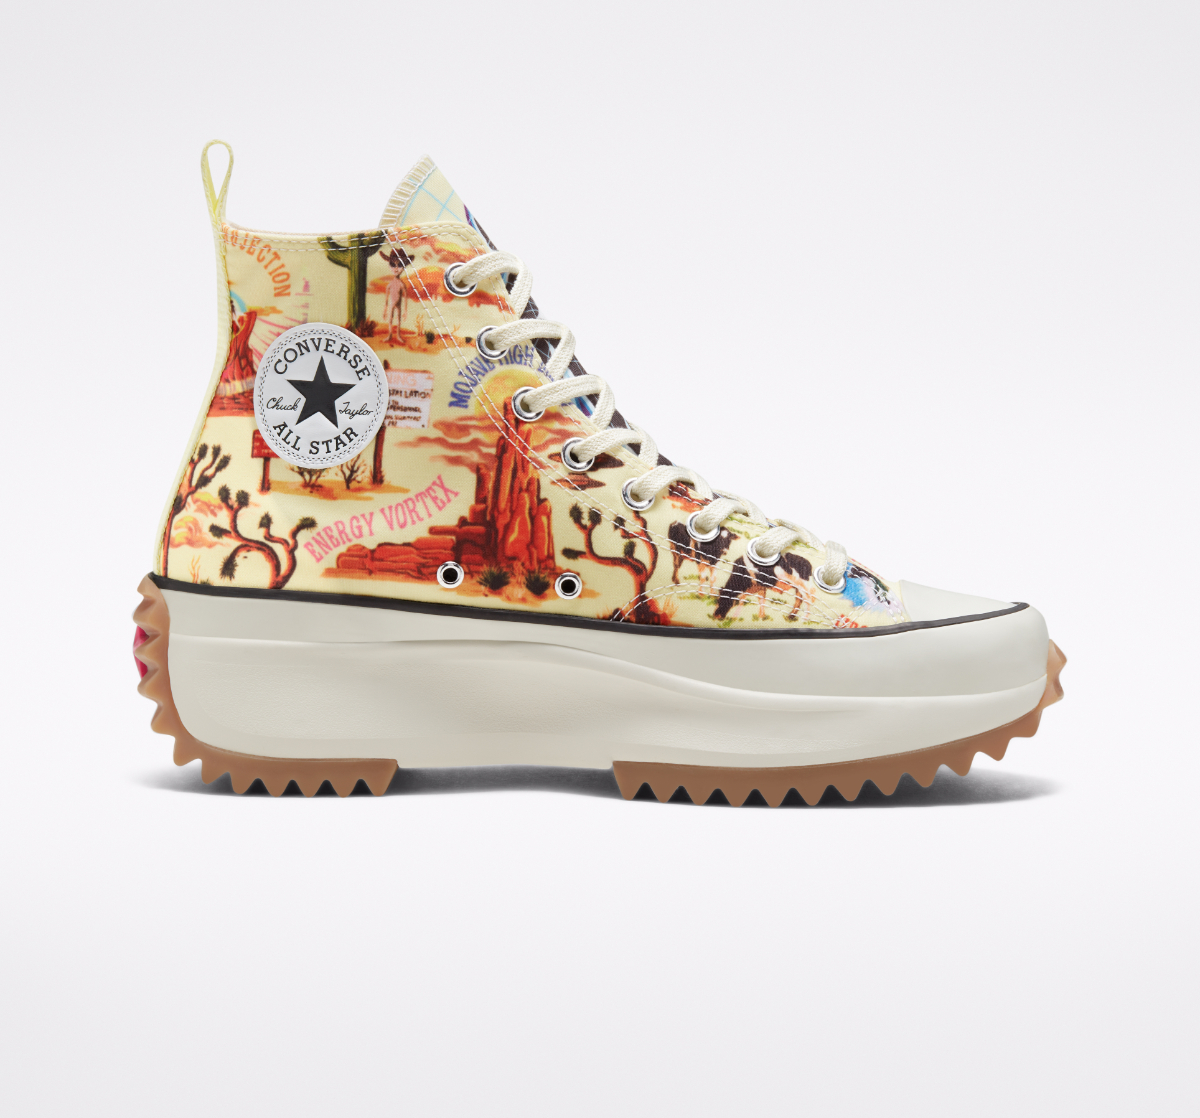 Converse Present Extra-Terrestrial Scenes on Latest Sneakers